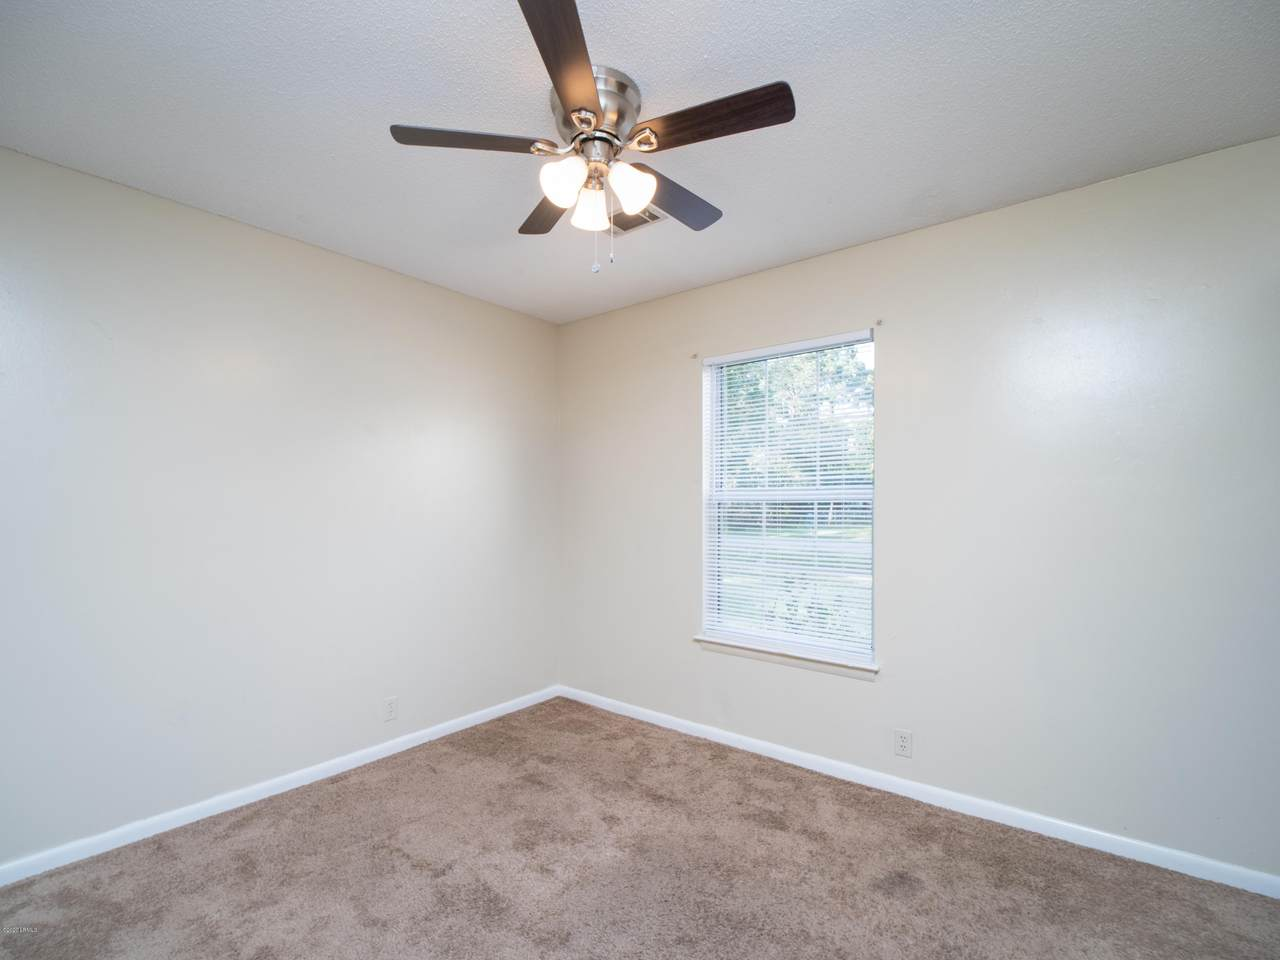 3156 Clydesdale Circle - Photo 1